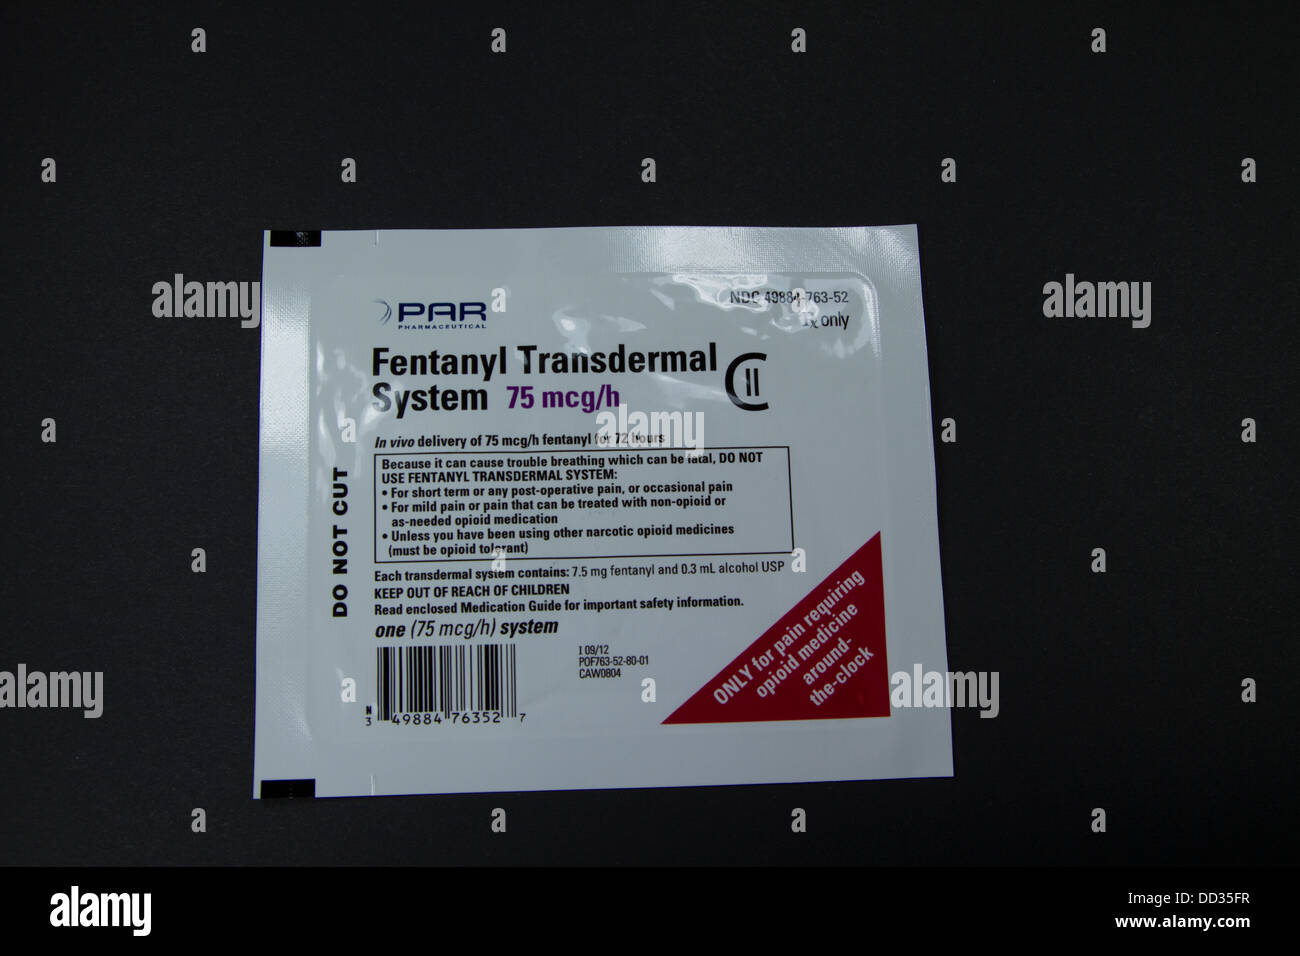 Fentanyl patches. Prescription pain killers that are often abused by addicts. Very potent pain medicine. - Stock Image